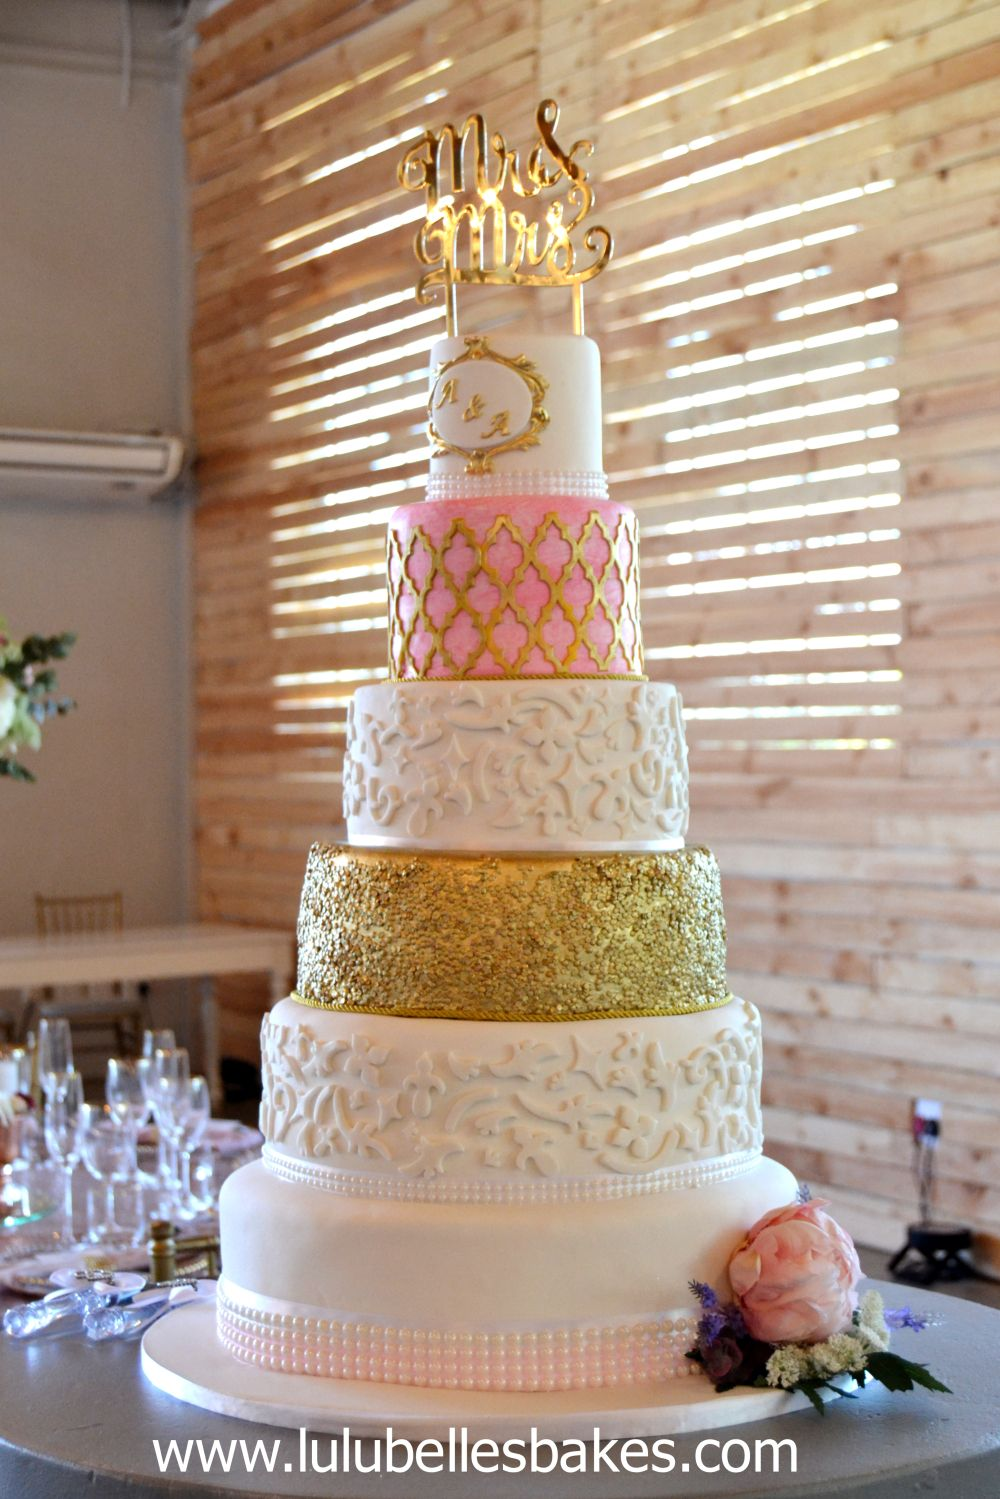 6 Tier Gold Pink And White Elegant Wedding Cake With Marvelous Molds Moroccan Onlay Mat Detail Huge Wedding Cakes Pink Wedding Cake Modern Wedding Cake